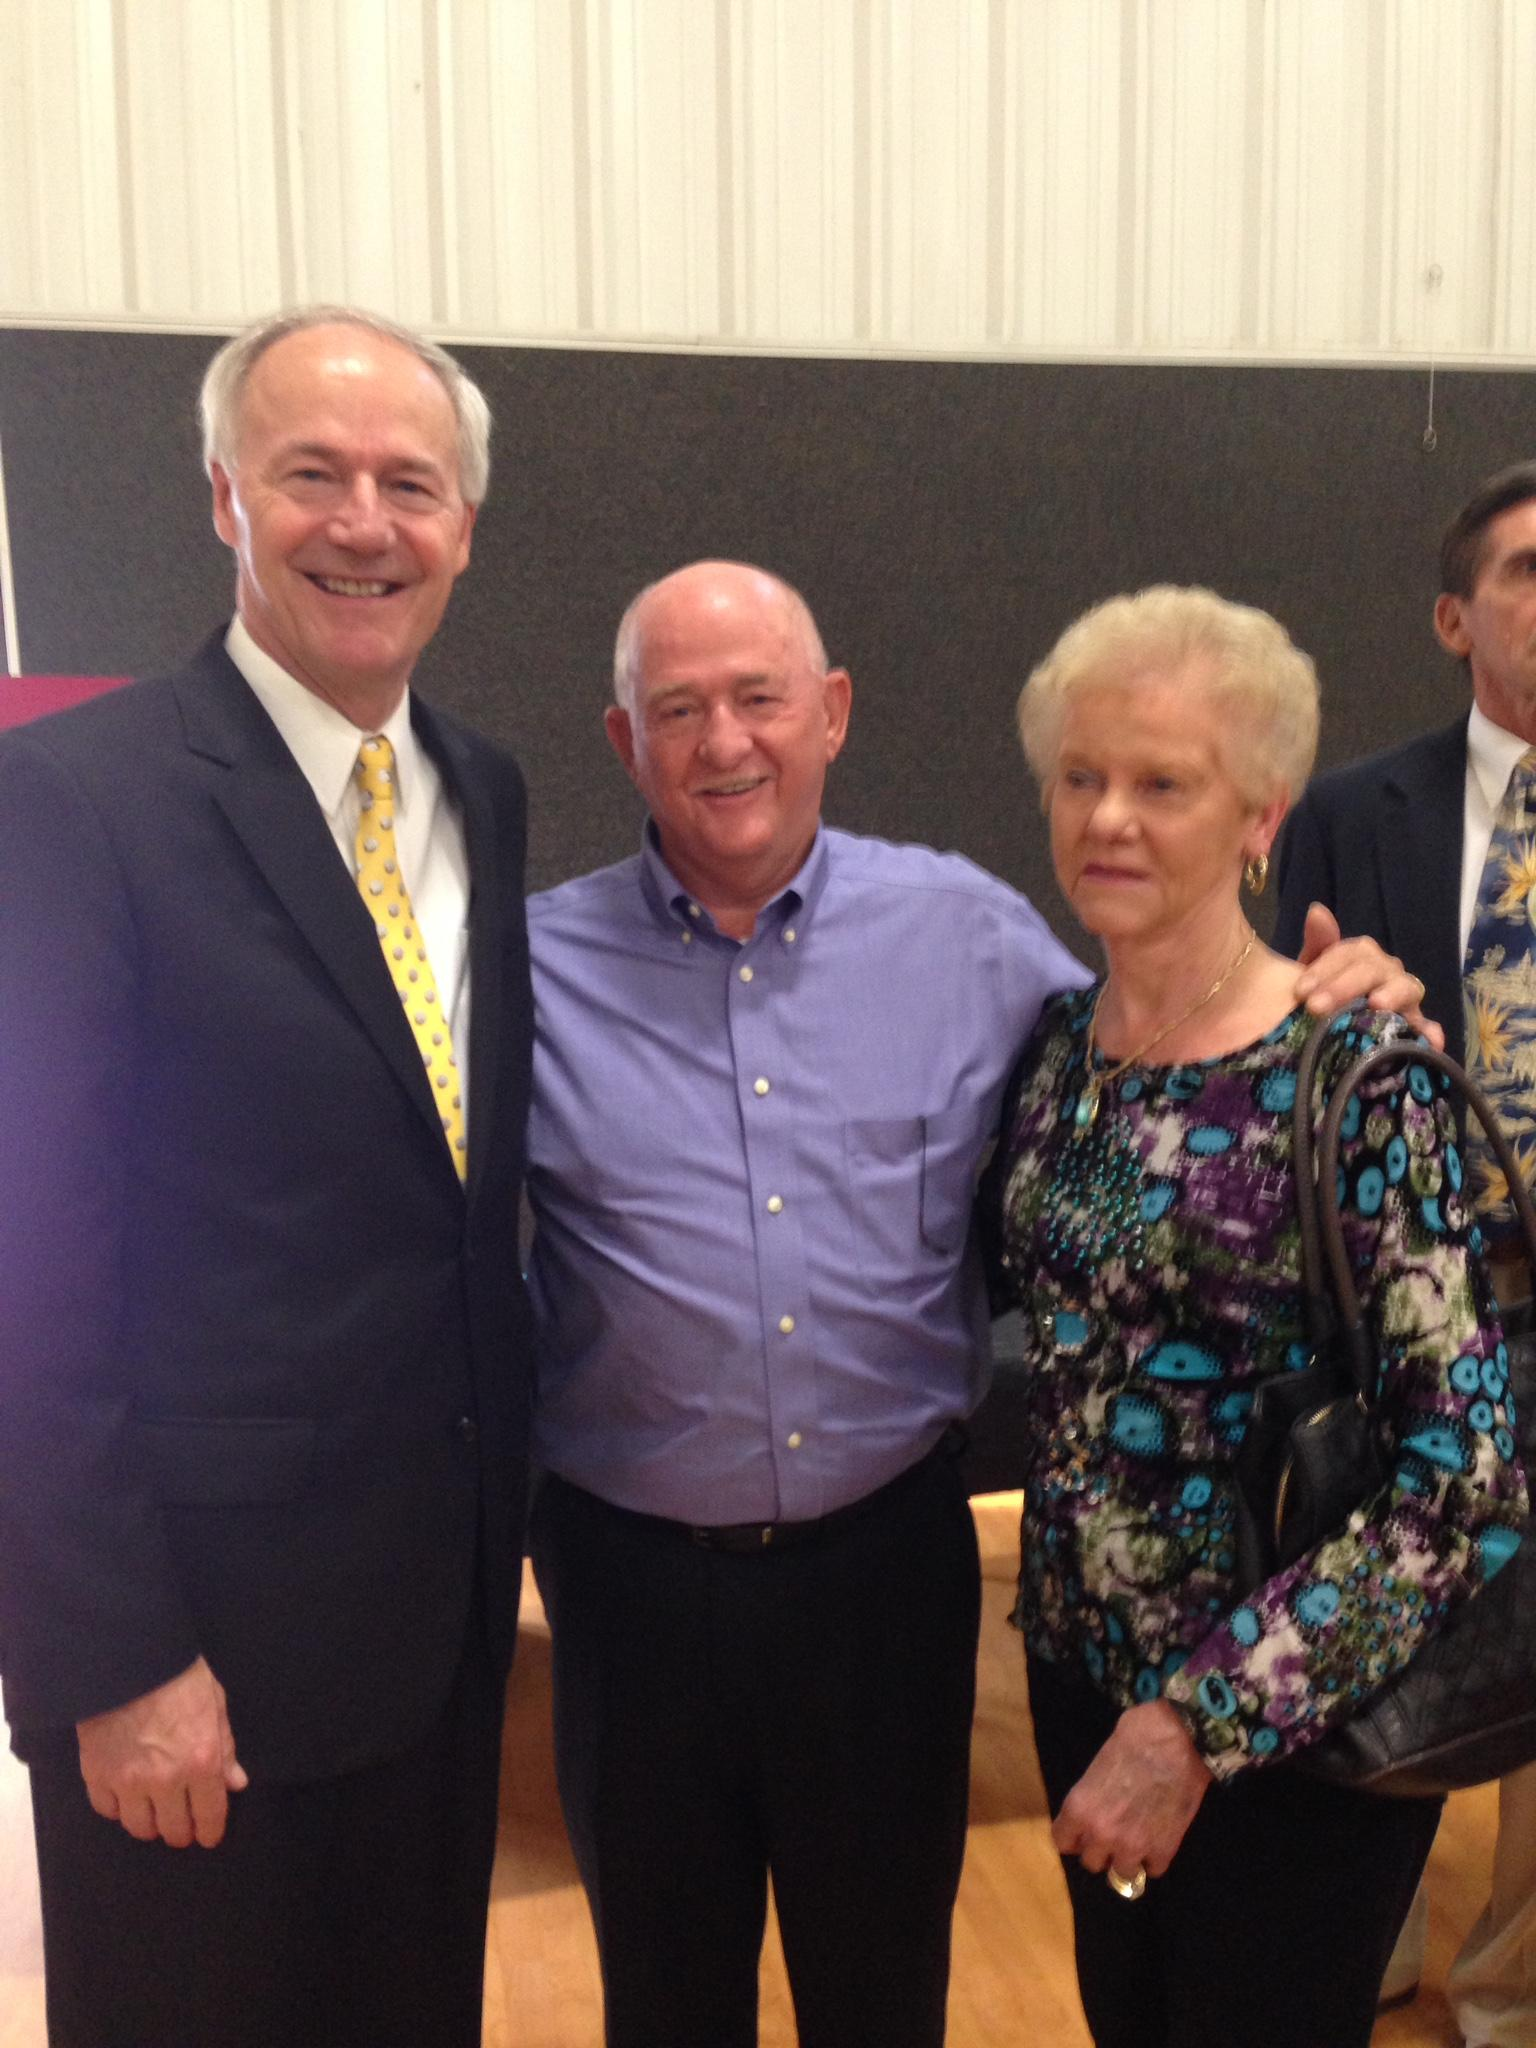 Arkansas Governor Asa Hutchinson with family of P.E.A.R.L. founder Karen Slater at Drug Court graduation ceremony (May,2015)